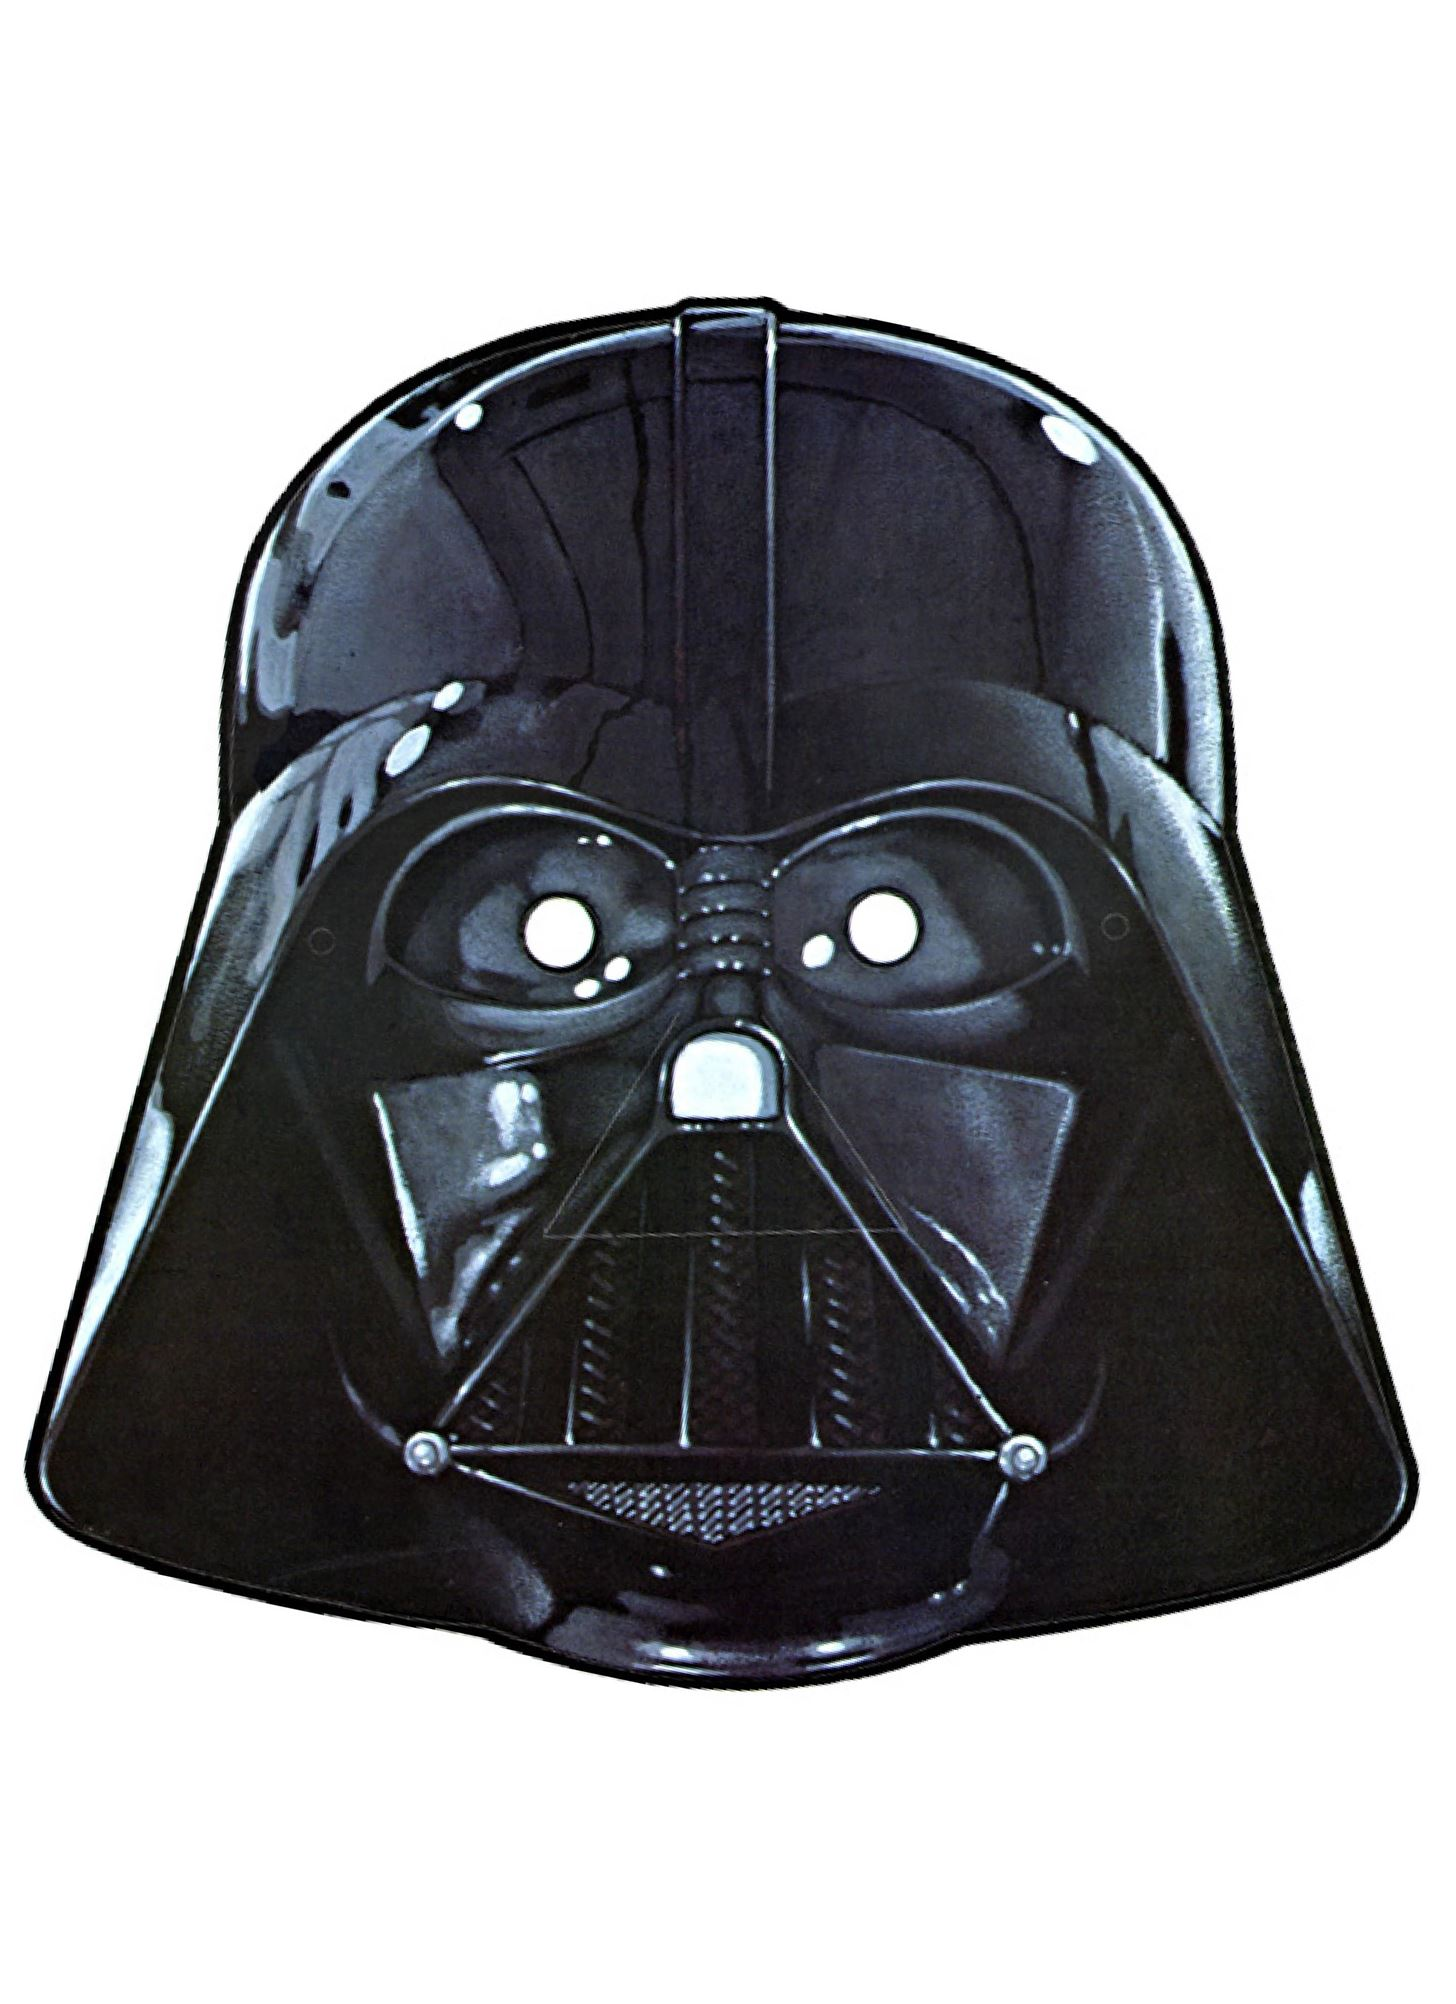 photograph regarding Printable Star Wars Mask named Final-Moment Halloween Quickie: 100+ Free of charge Printable Masks